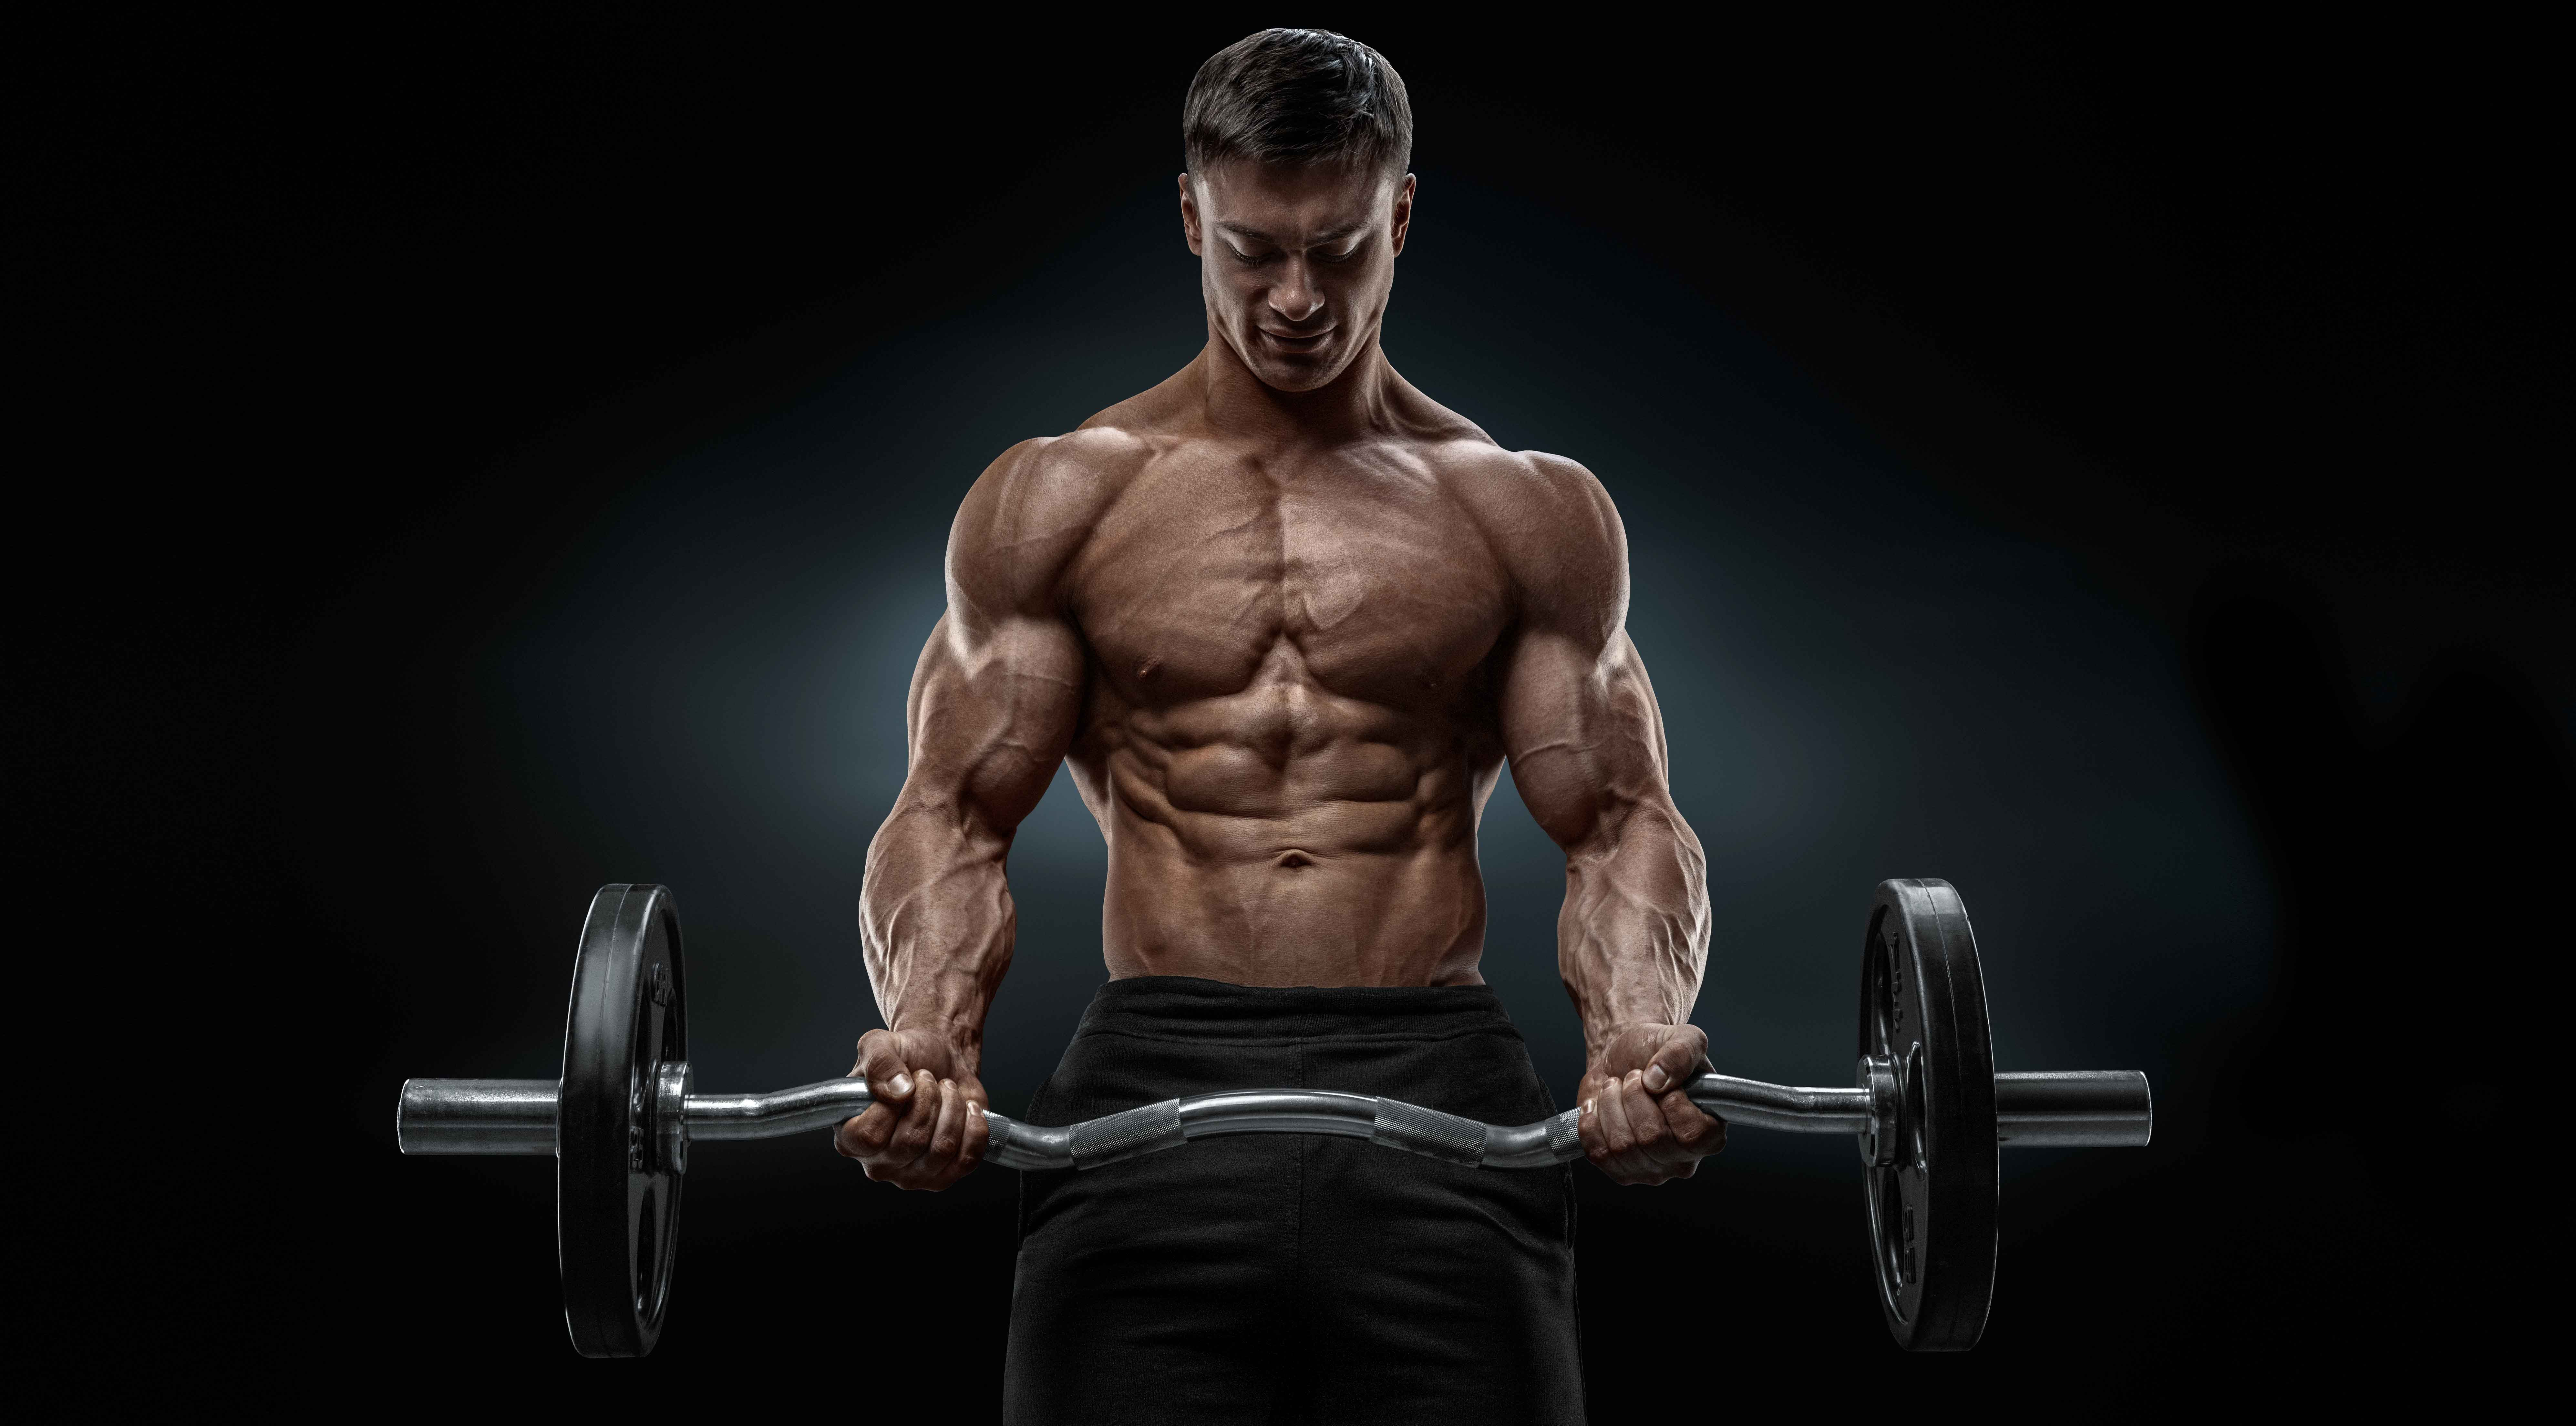 3 week training to keep a shredded physique muscle fitness ccuart Choice Image